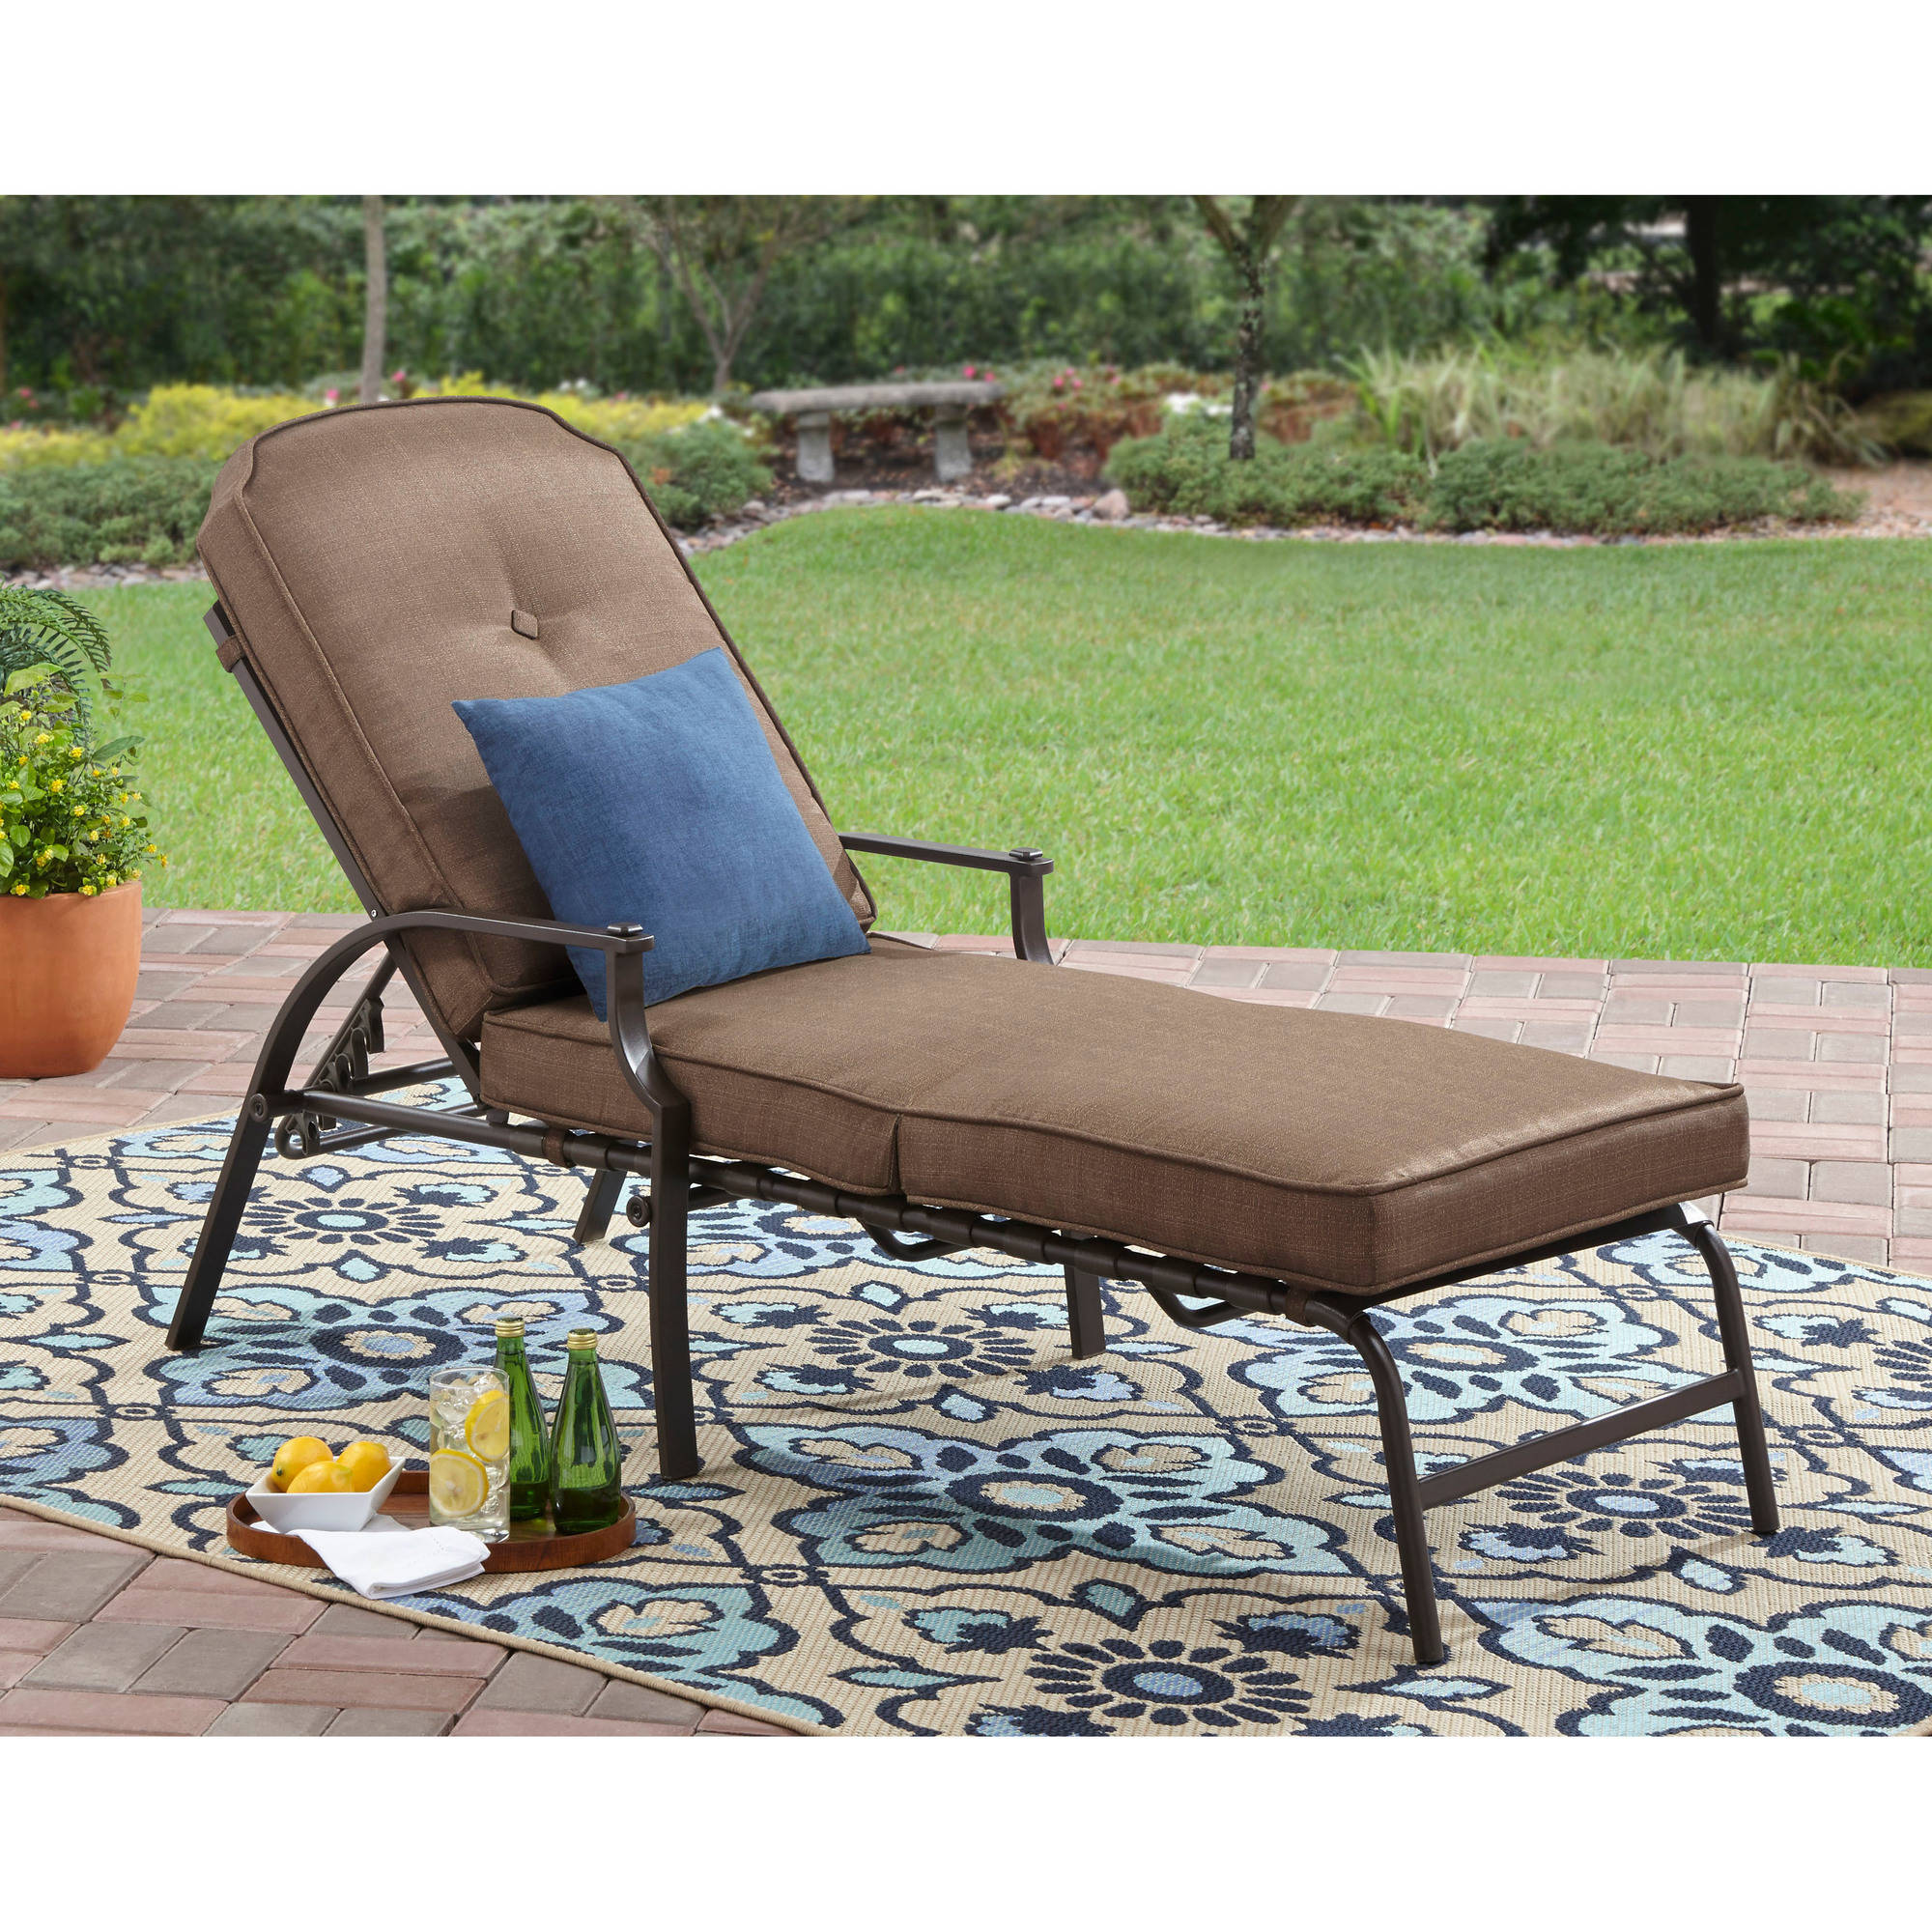 chair maureen lying coronado pool furniture ancheer mainstays folding lounge full multibrown chaise wicker cheap size portable outdoor beach pe lisbon recliner patio of